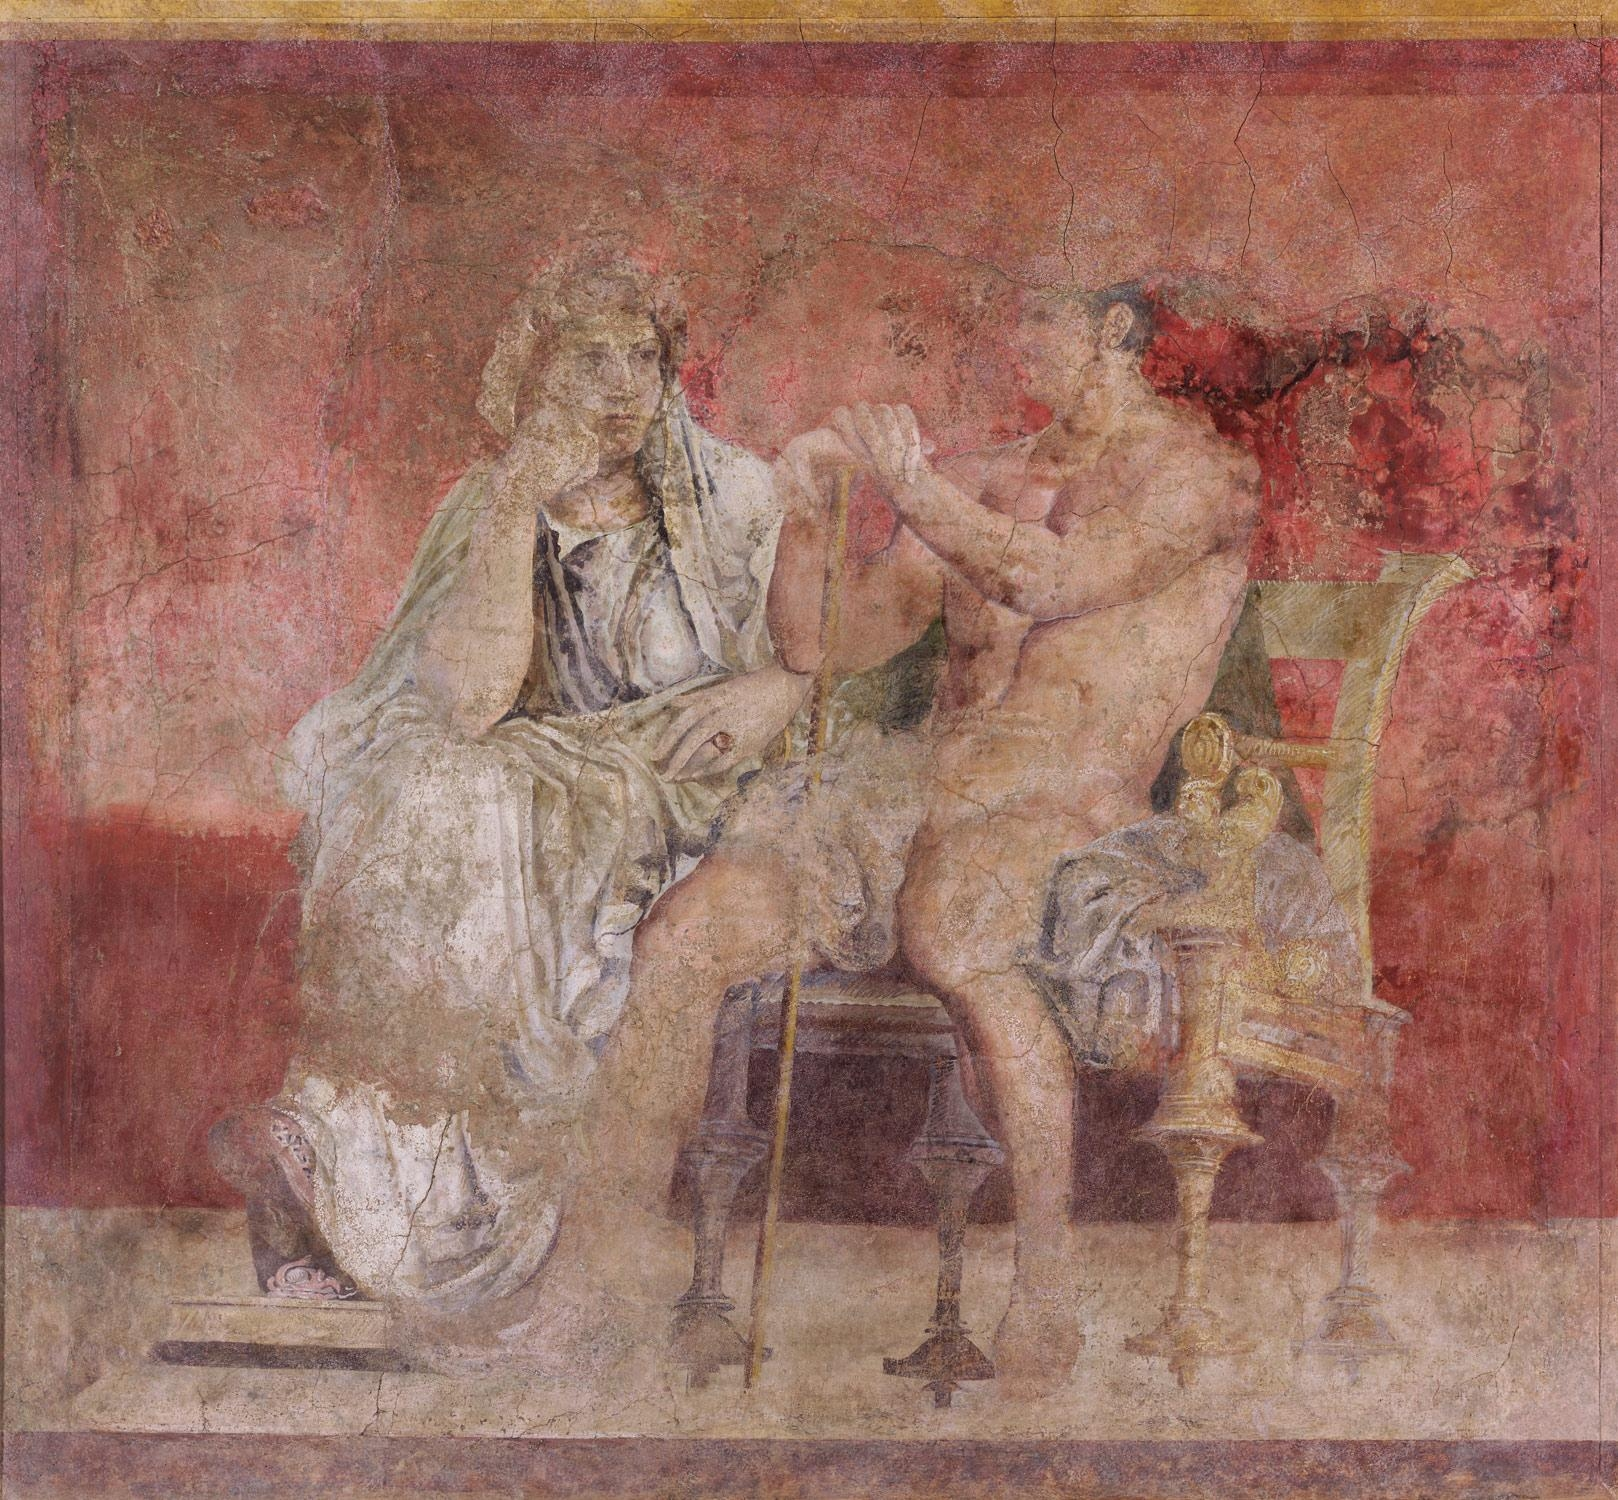 Wall Painting From Room H Of The Villa Of P (View 8 of 20)